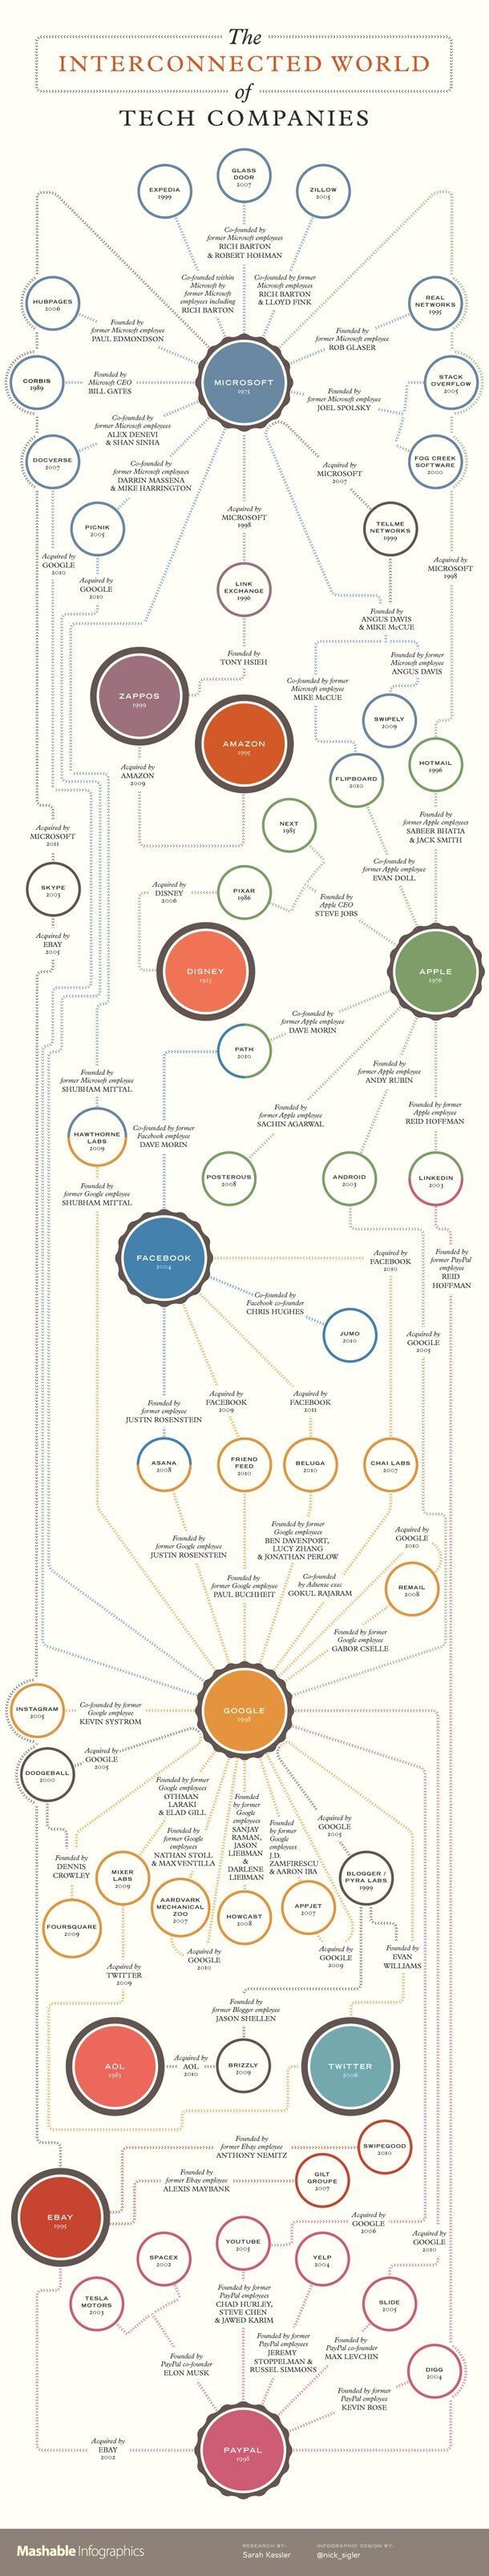 The Interconnected World of Tech Companies (INFOGRAPHIC)